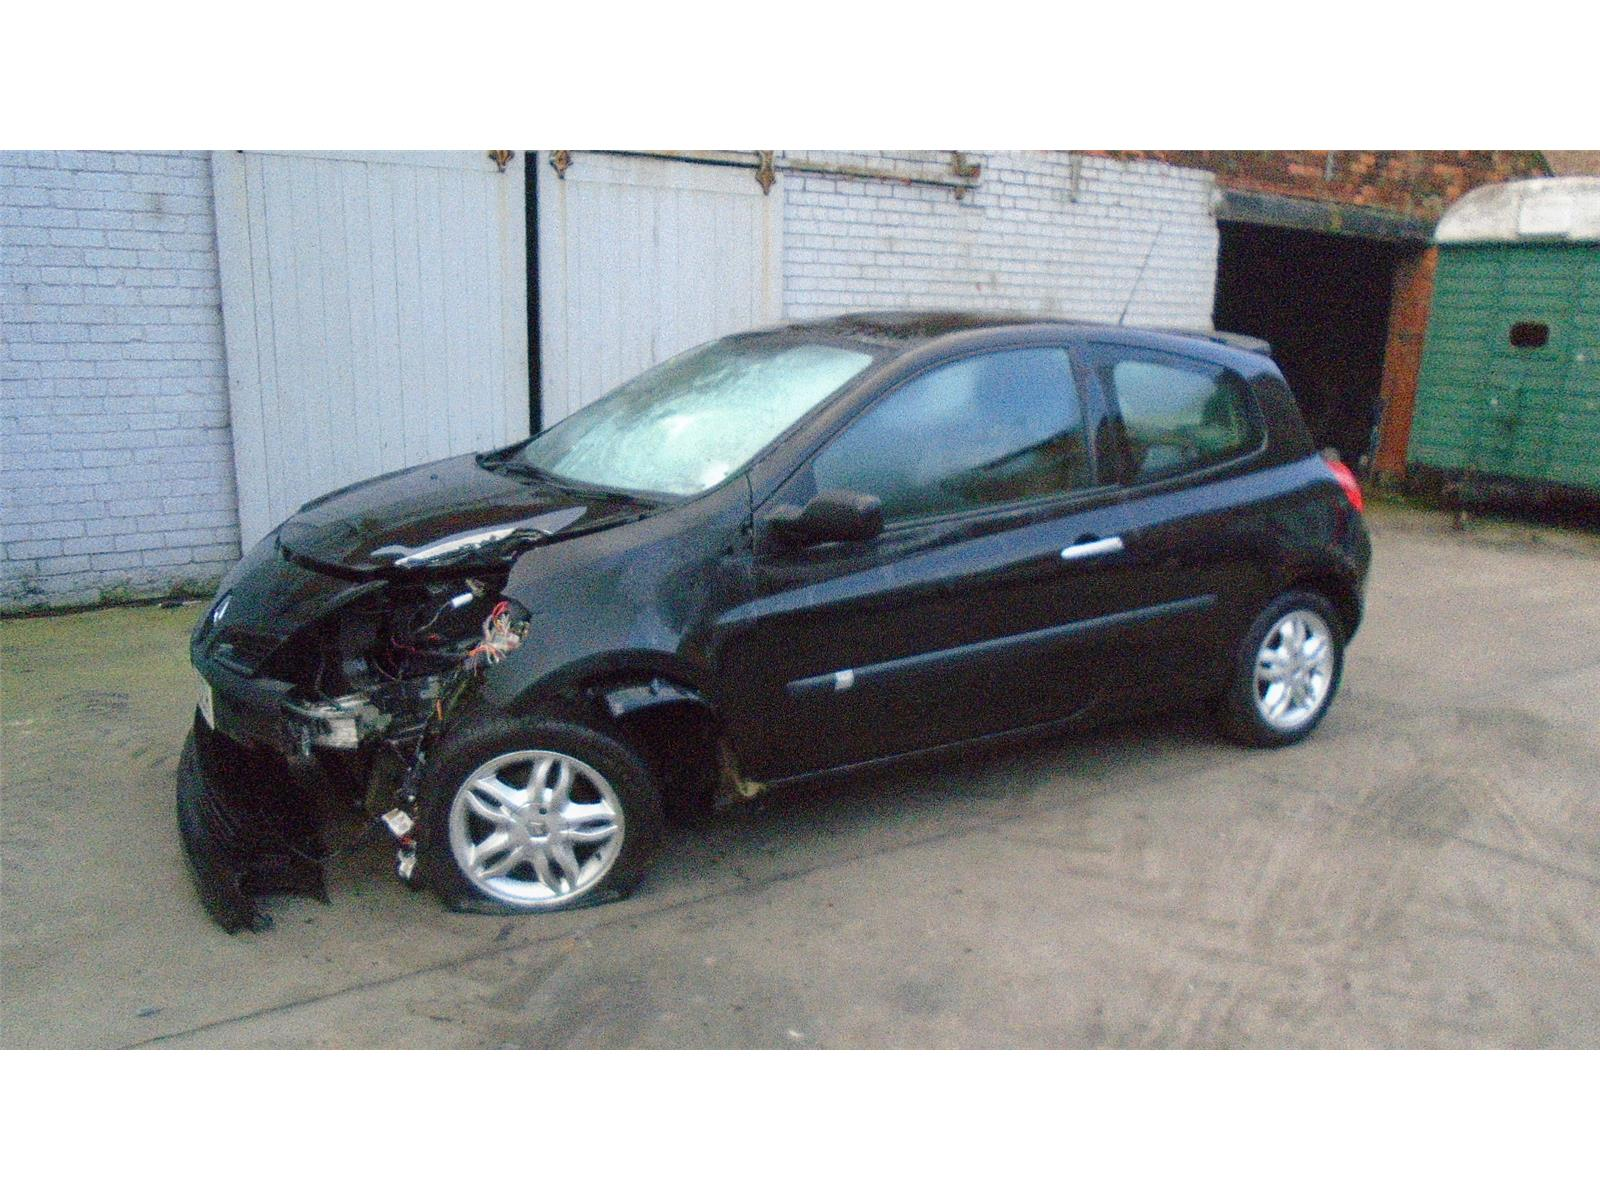 2006 Renault Clio To 2009 3 Door Hatchback Petrol Manual Nissan Kubistar Fuse Box Location